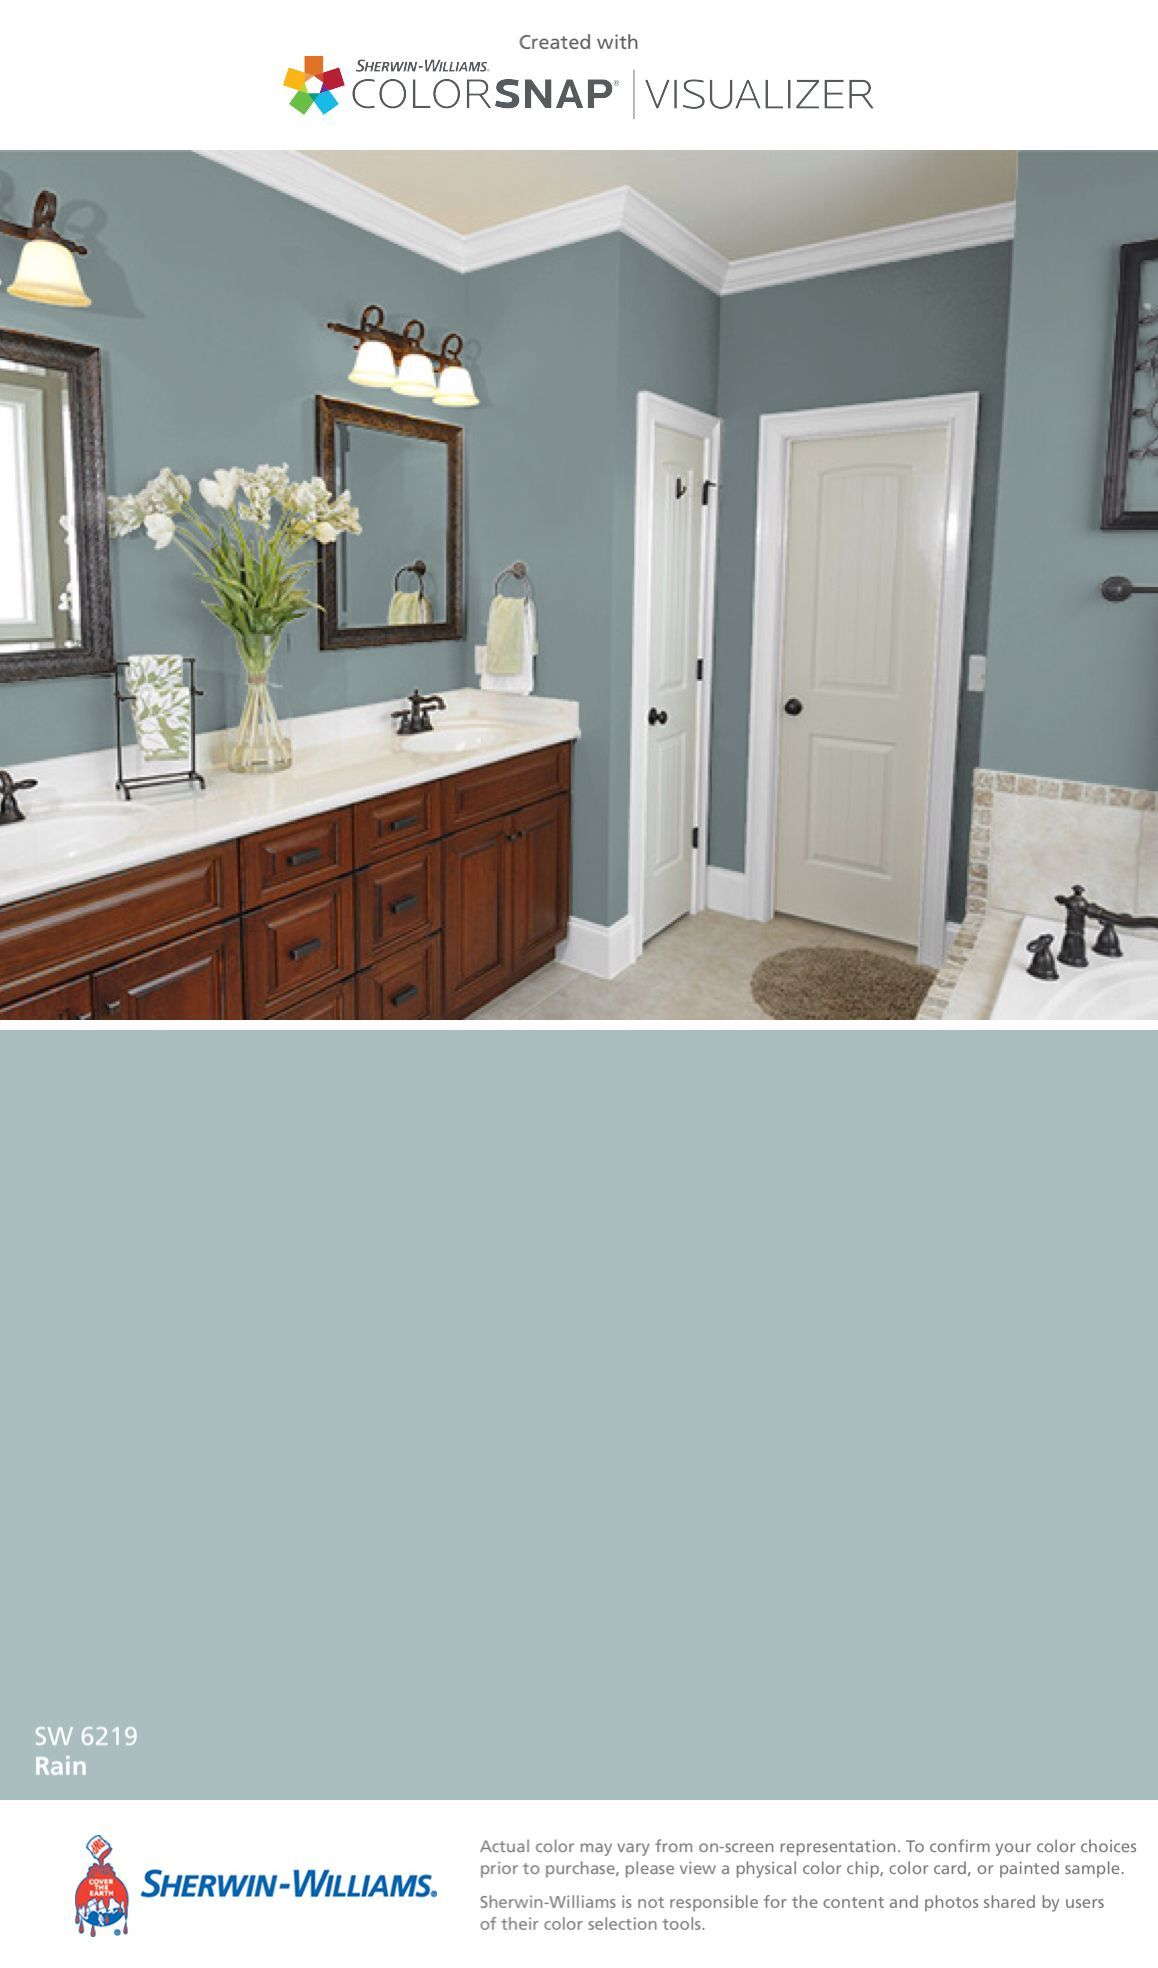 8 Secure Clever Tips Bathroom Remodel On A Budget Paint Bathroom Remodel Wood Master Bedrooms Bath In 2020 Bathroom Colors Bathroom Paint Colors Paint Colors For Home